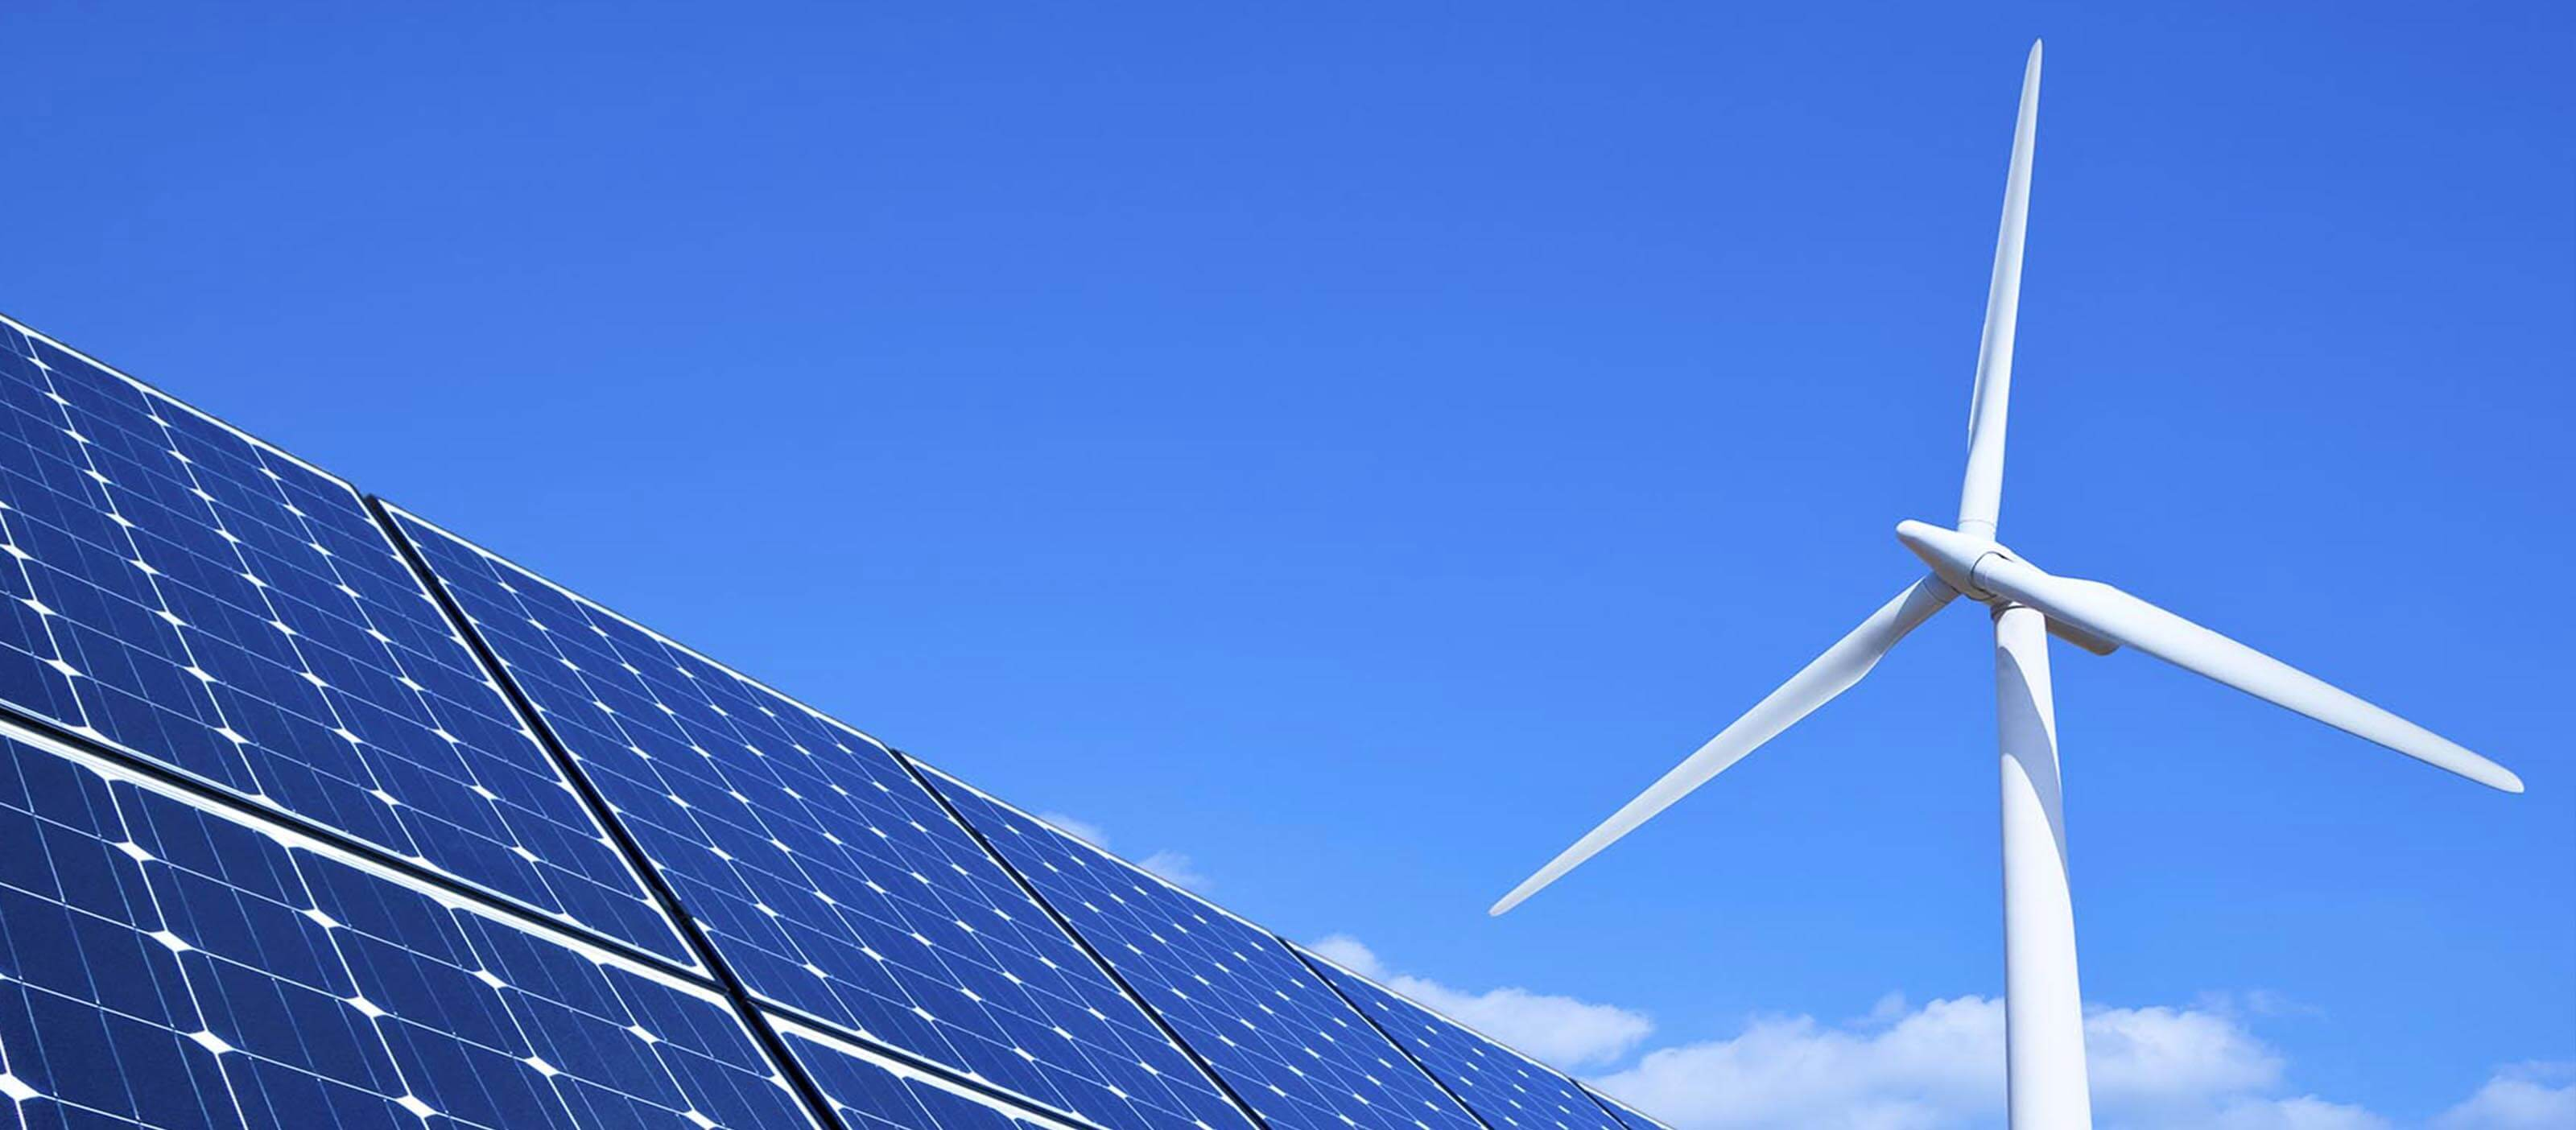 Software for Distributed Energy Resources | DER | GESoftware for Distributed Energy Resources | DER | GE